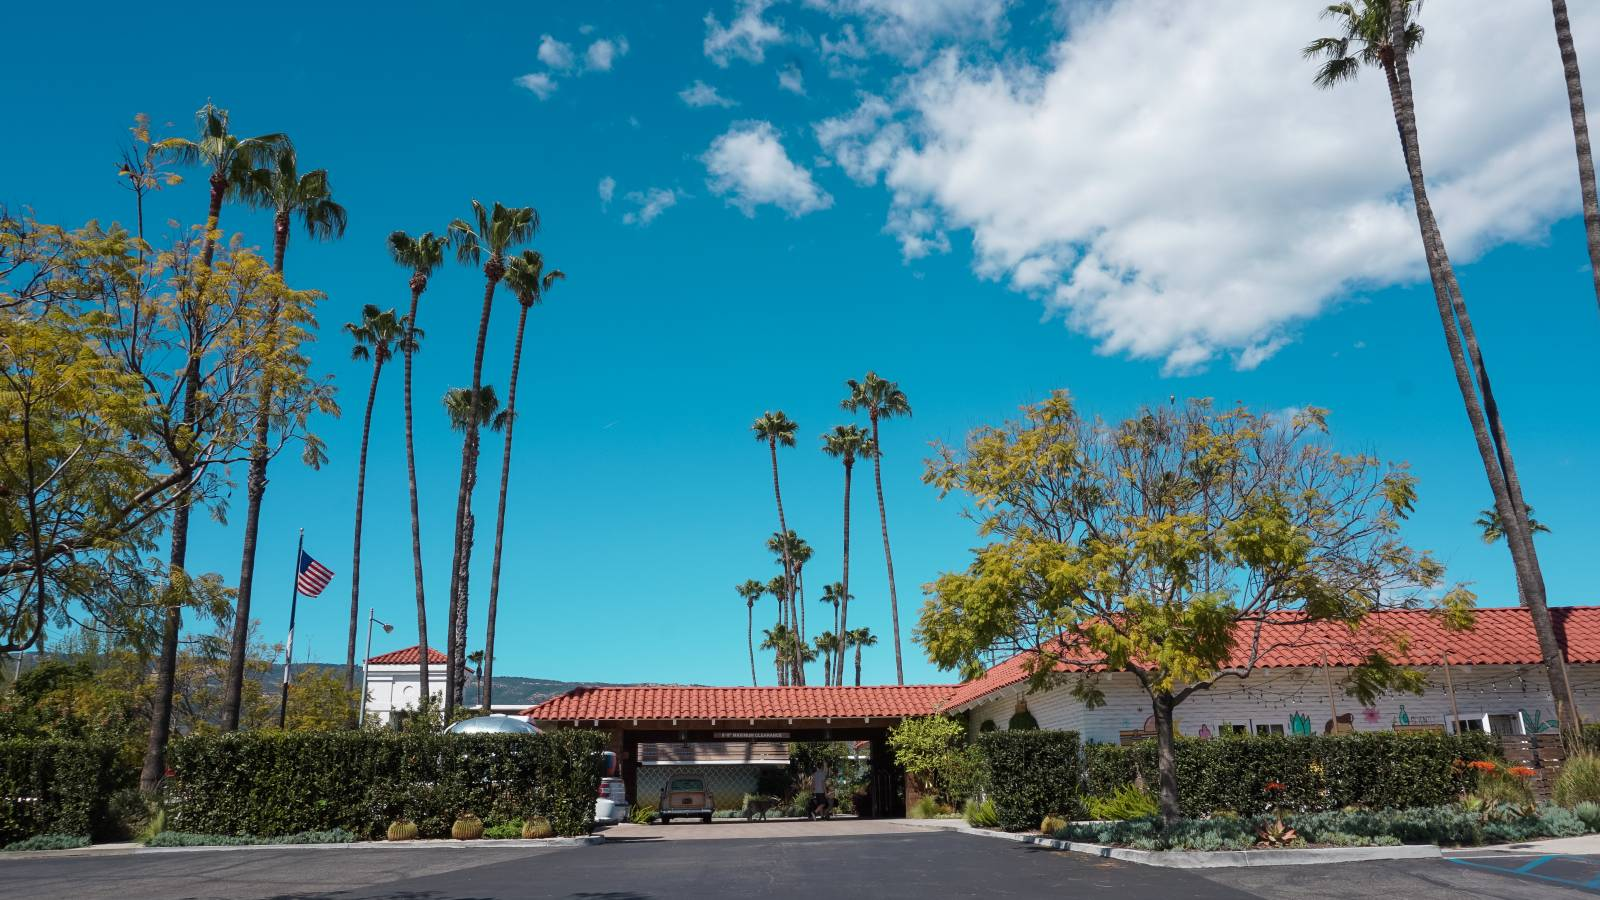 Best Retro Santa Barbara Hotel - The Goodland - Amy Marietta